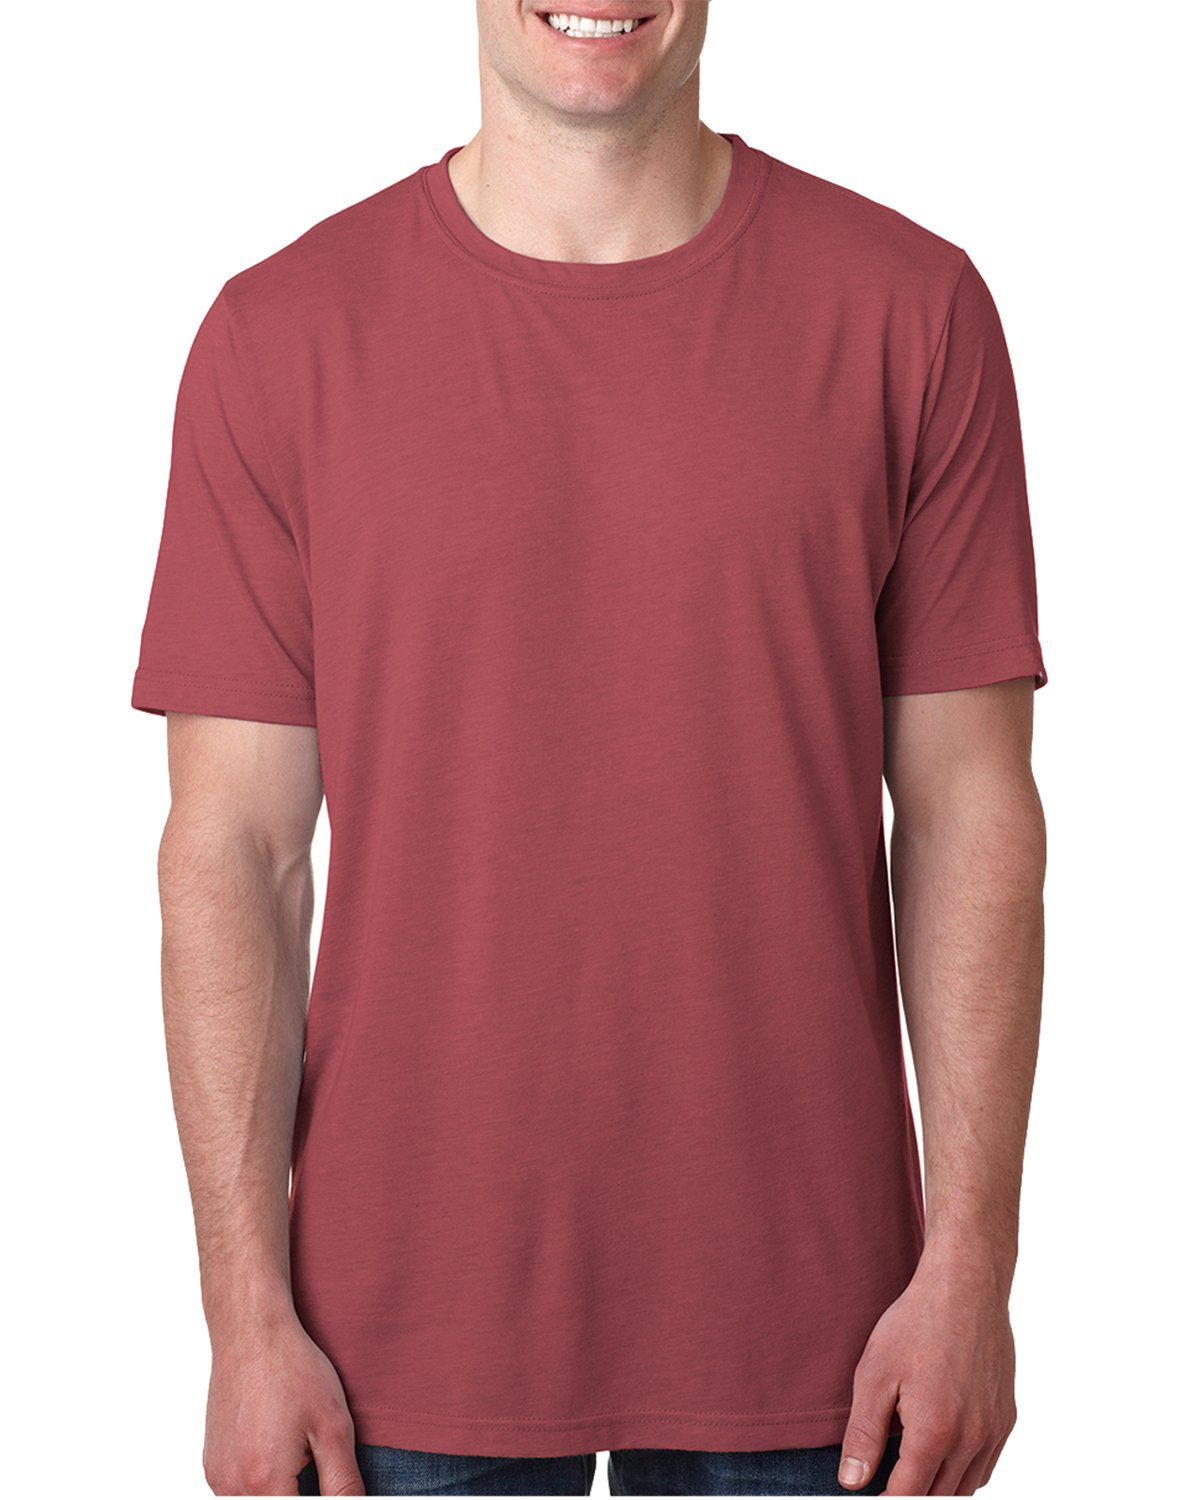 Next Level 6200 Mens Crew Tee